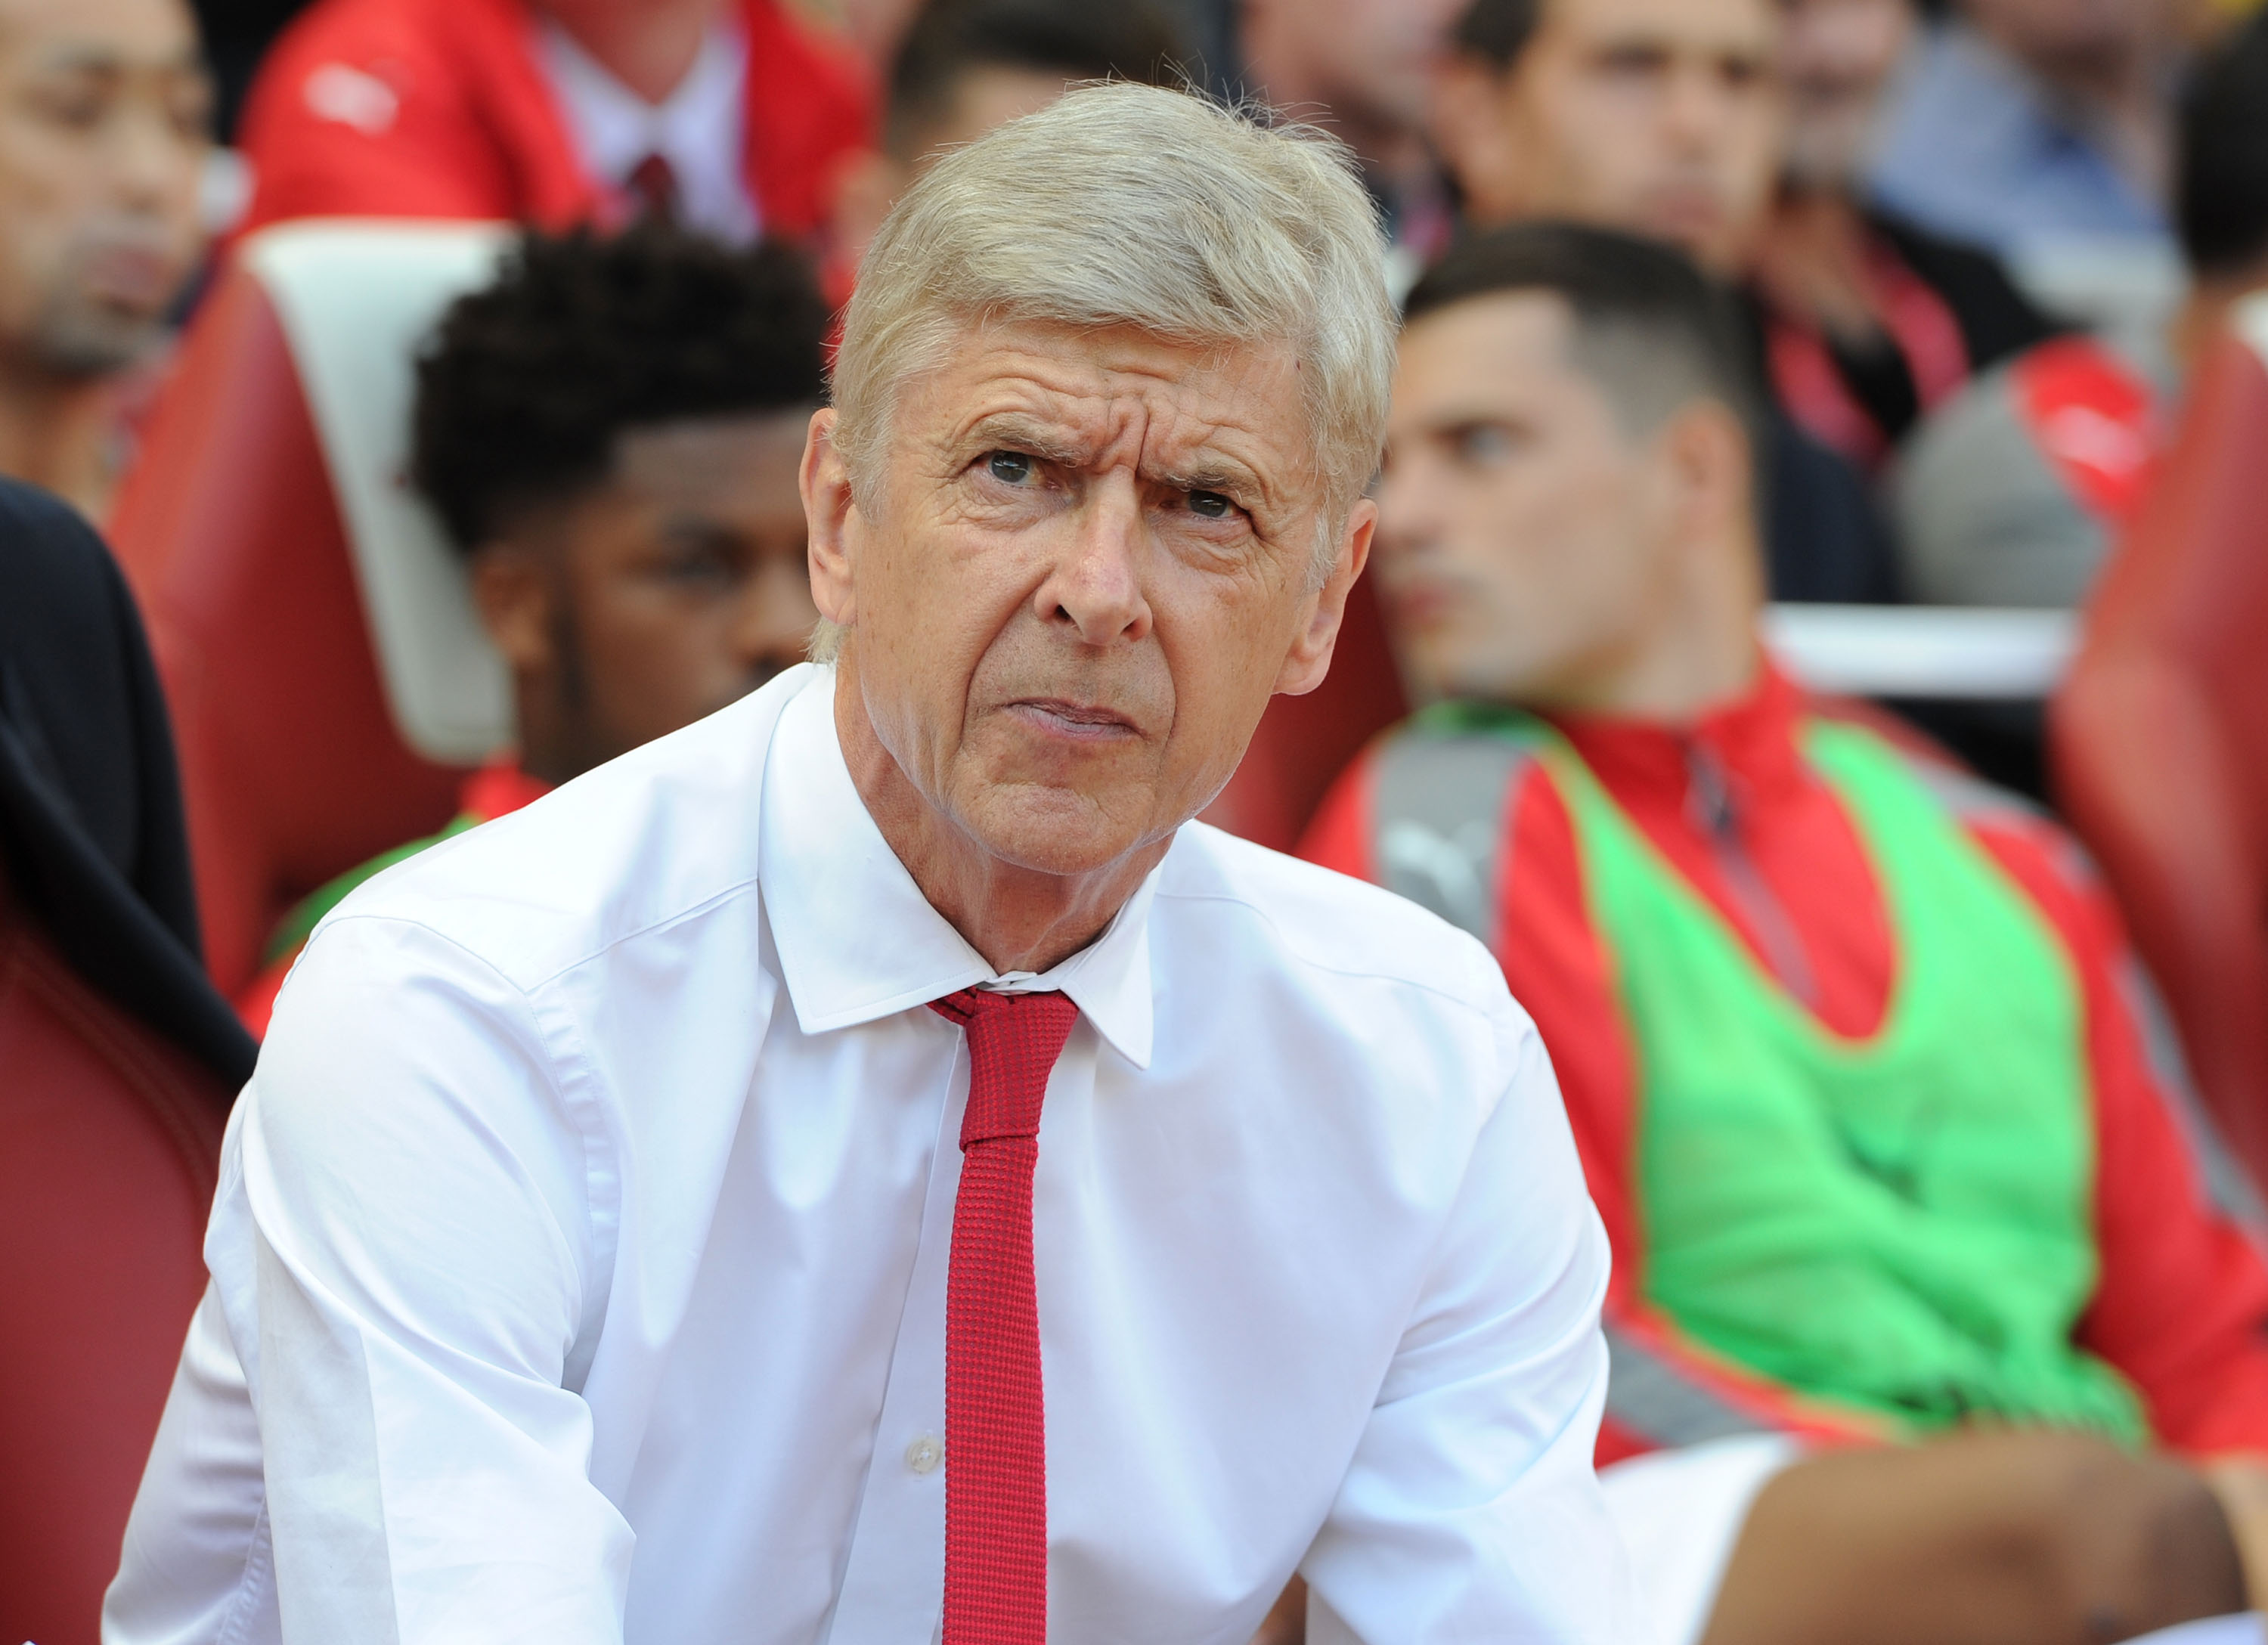 Arsene Wenger's arrogance has scuppered Arsenal's hopes of winning the title this season, says Andy Cole